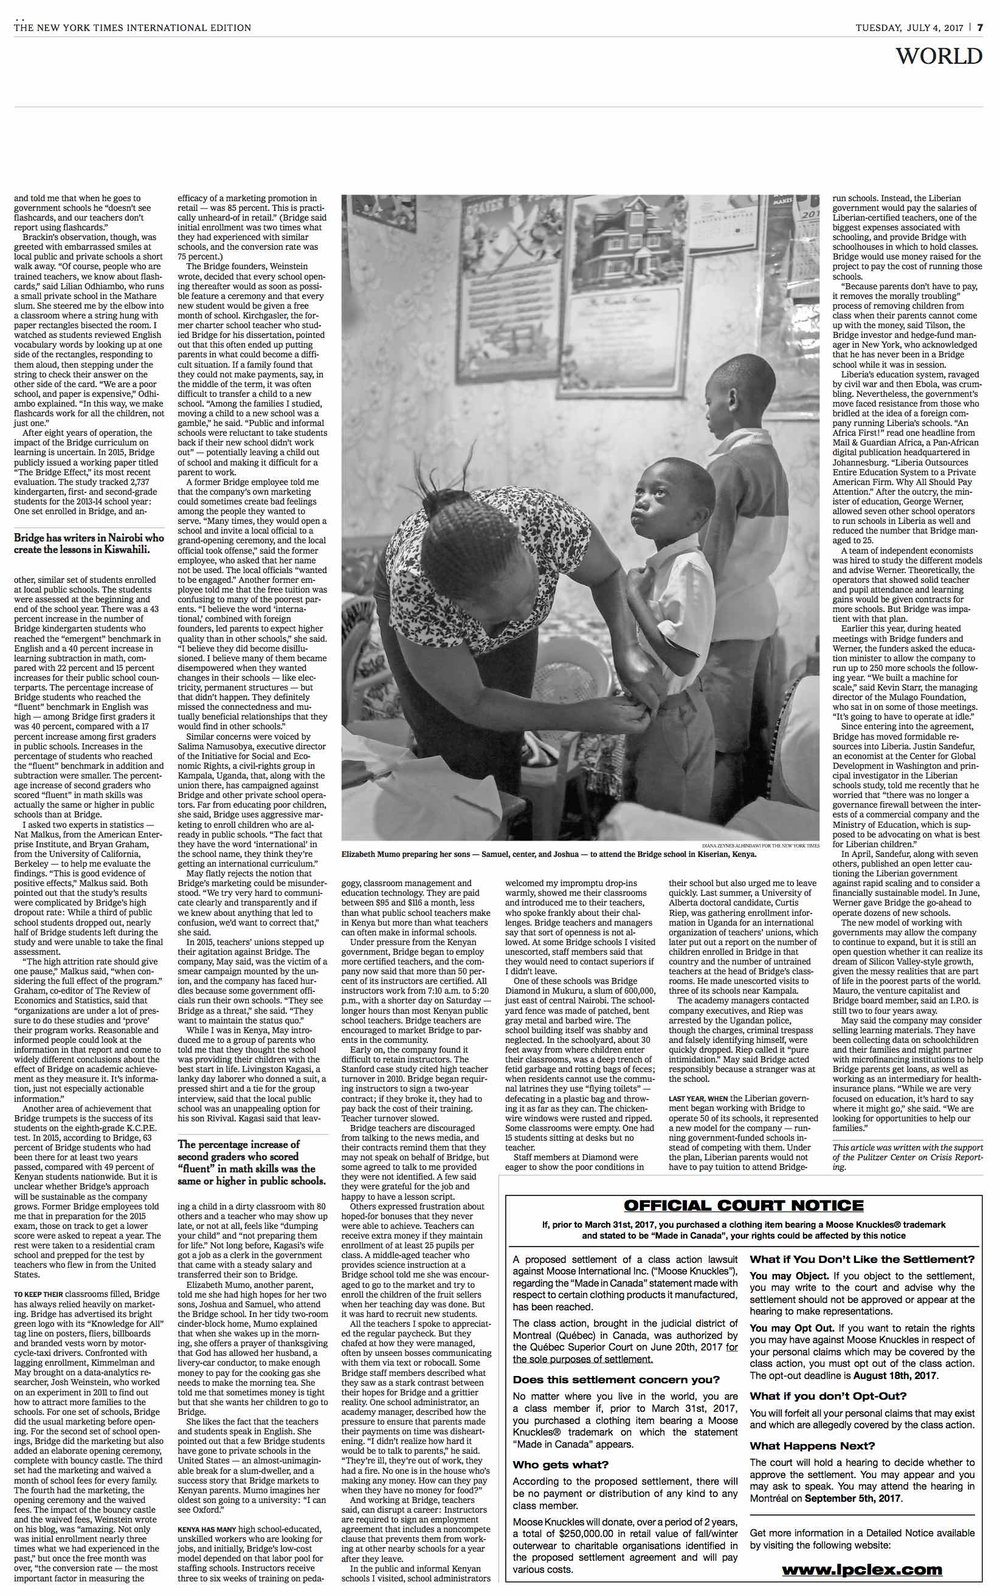 Diana Zeyneb Alhindawi_2017_07_04_International New York Times_page 7 s_bridge education africa.jpg